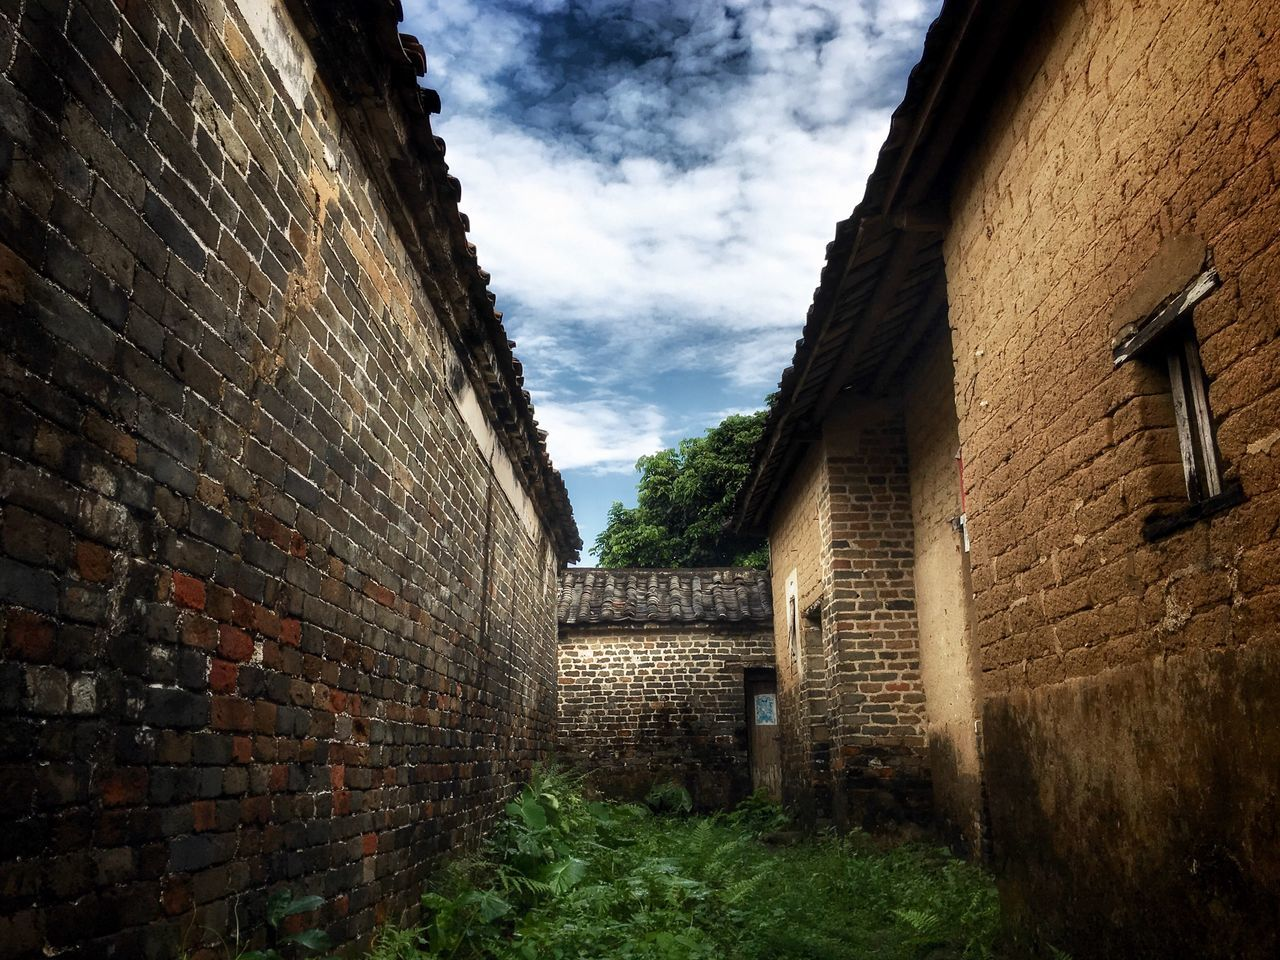 architecture, building exterior, built structure, brick wall, cloud - sky, no people, outdoors, sky, day